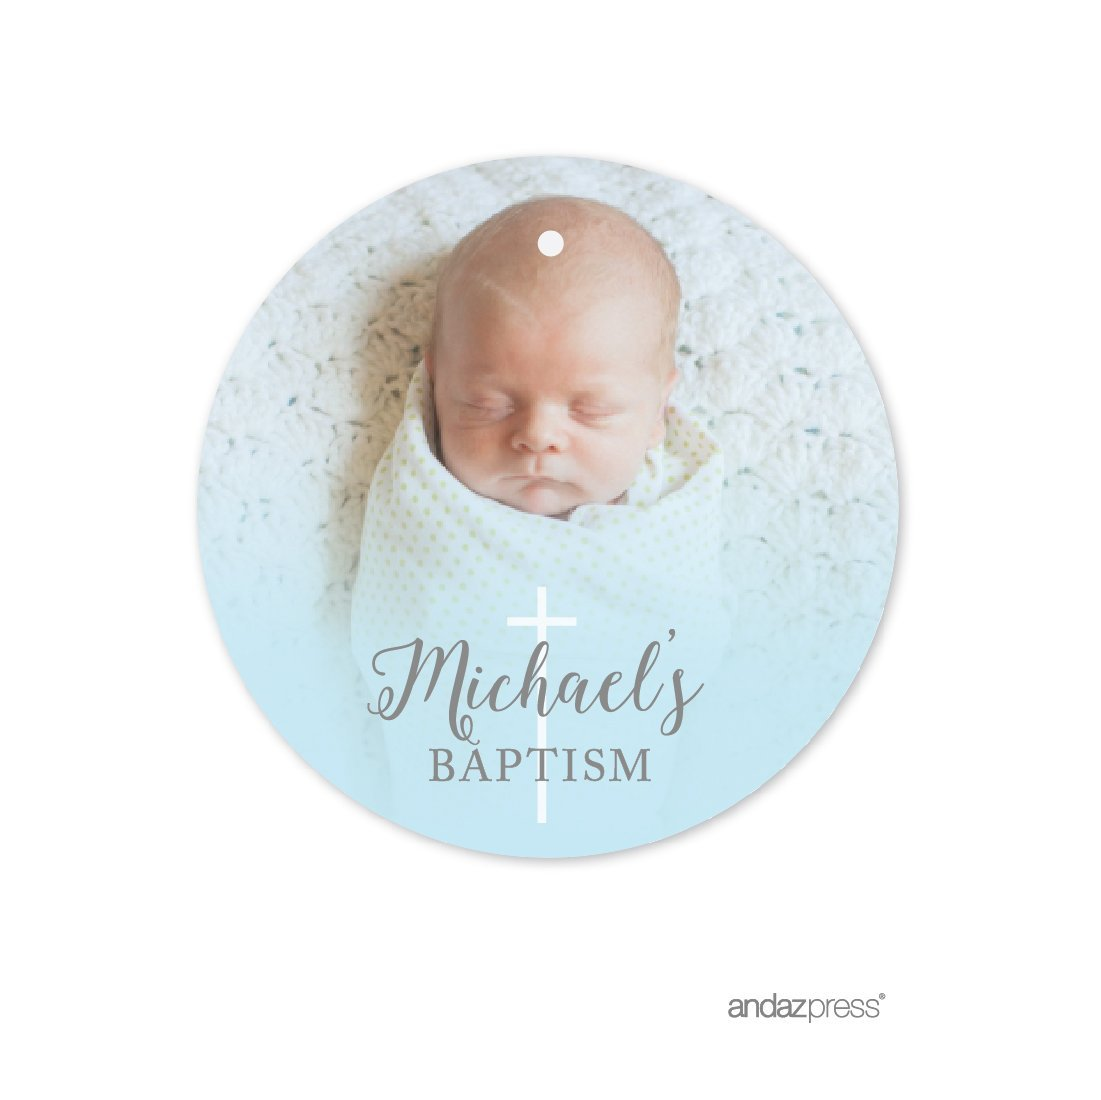 Amazon.com: Andaz Press Baby Blue and Gray Boy Baptism Collection, Photo Personalized Round Circle Gift Tags, 24-Pack, Custom Image: Health & Personal Care